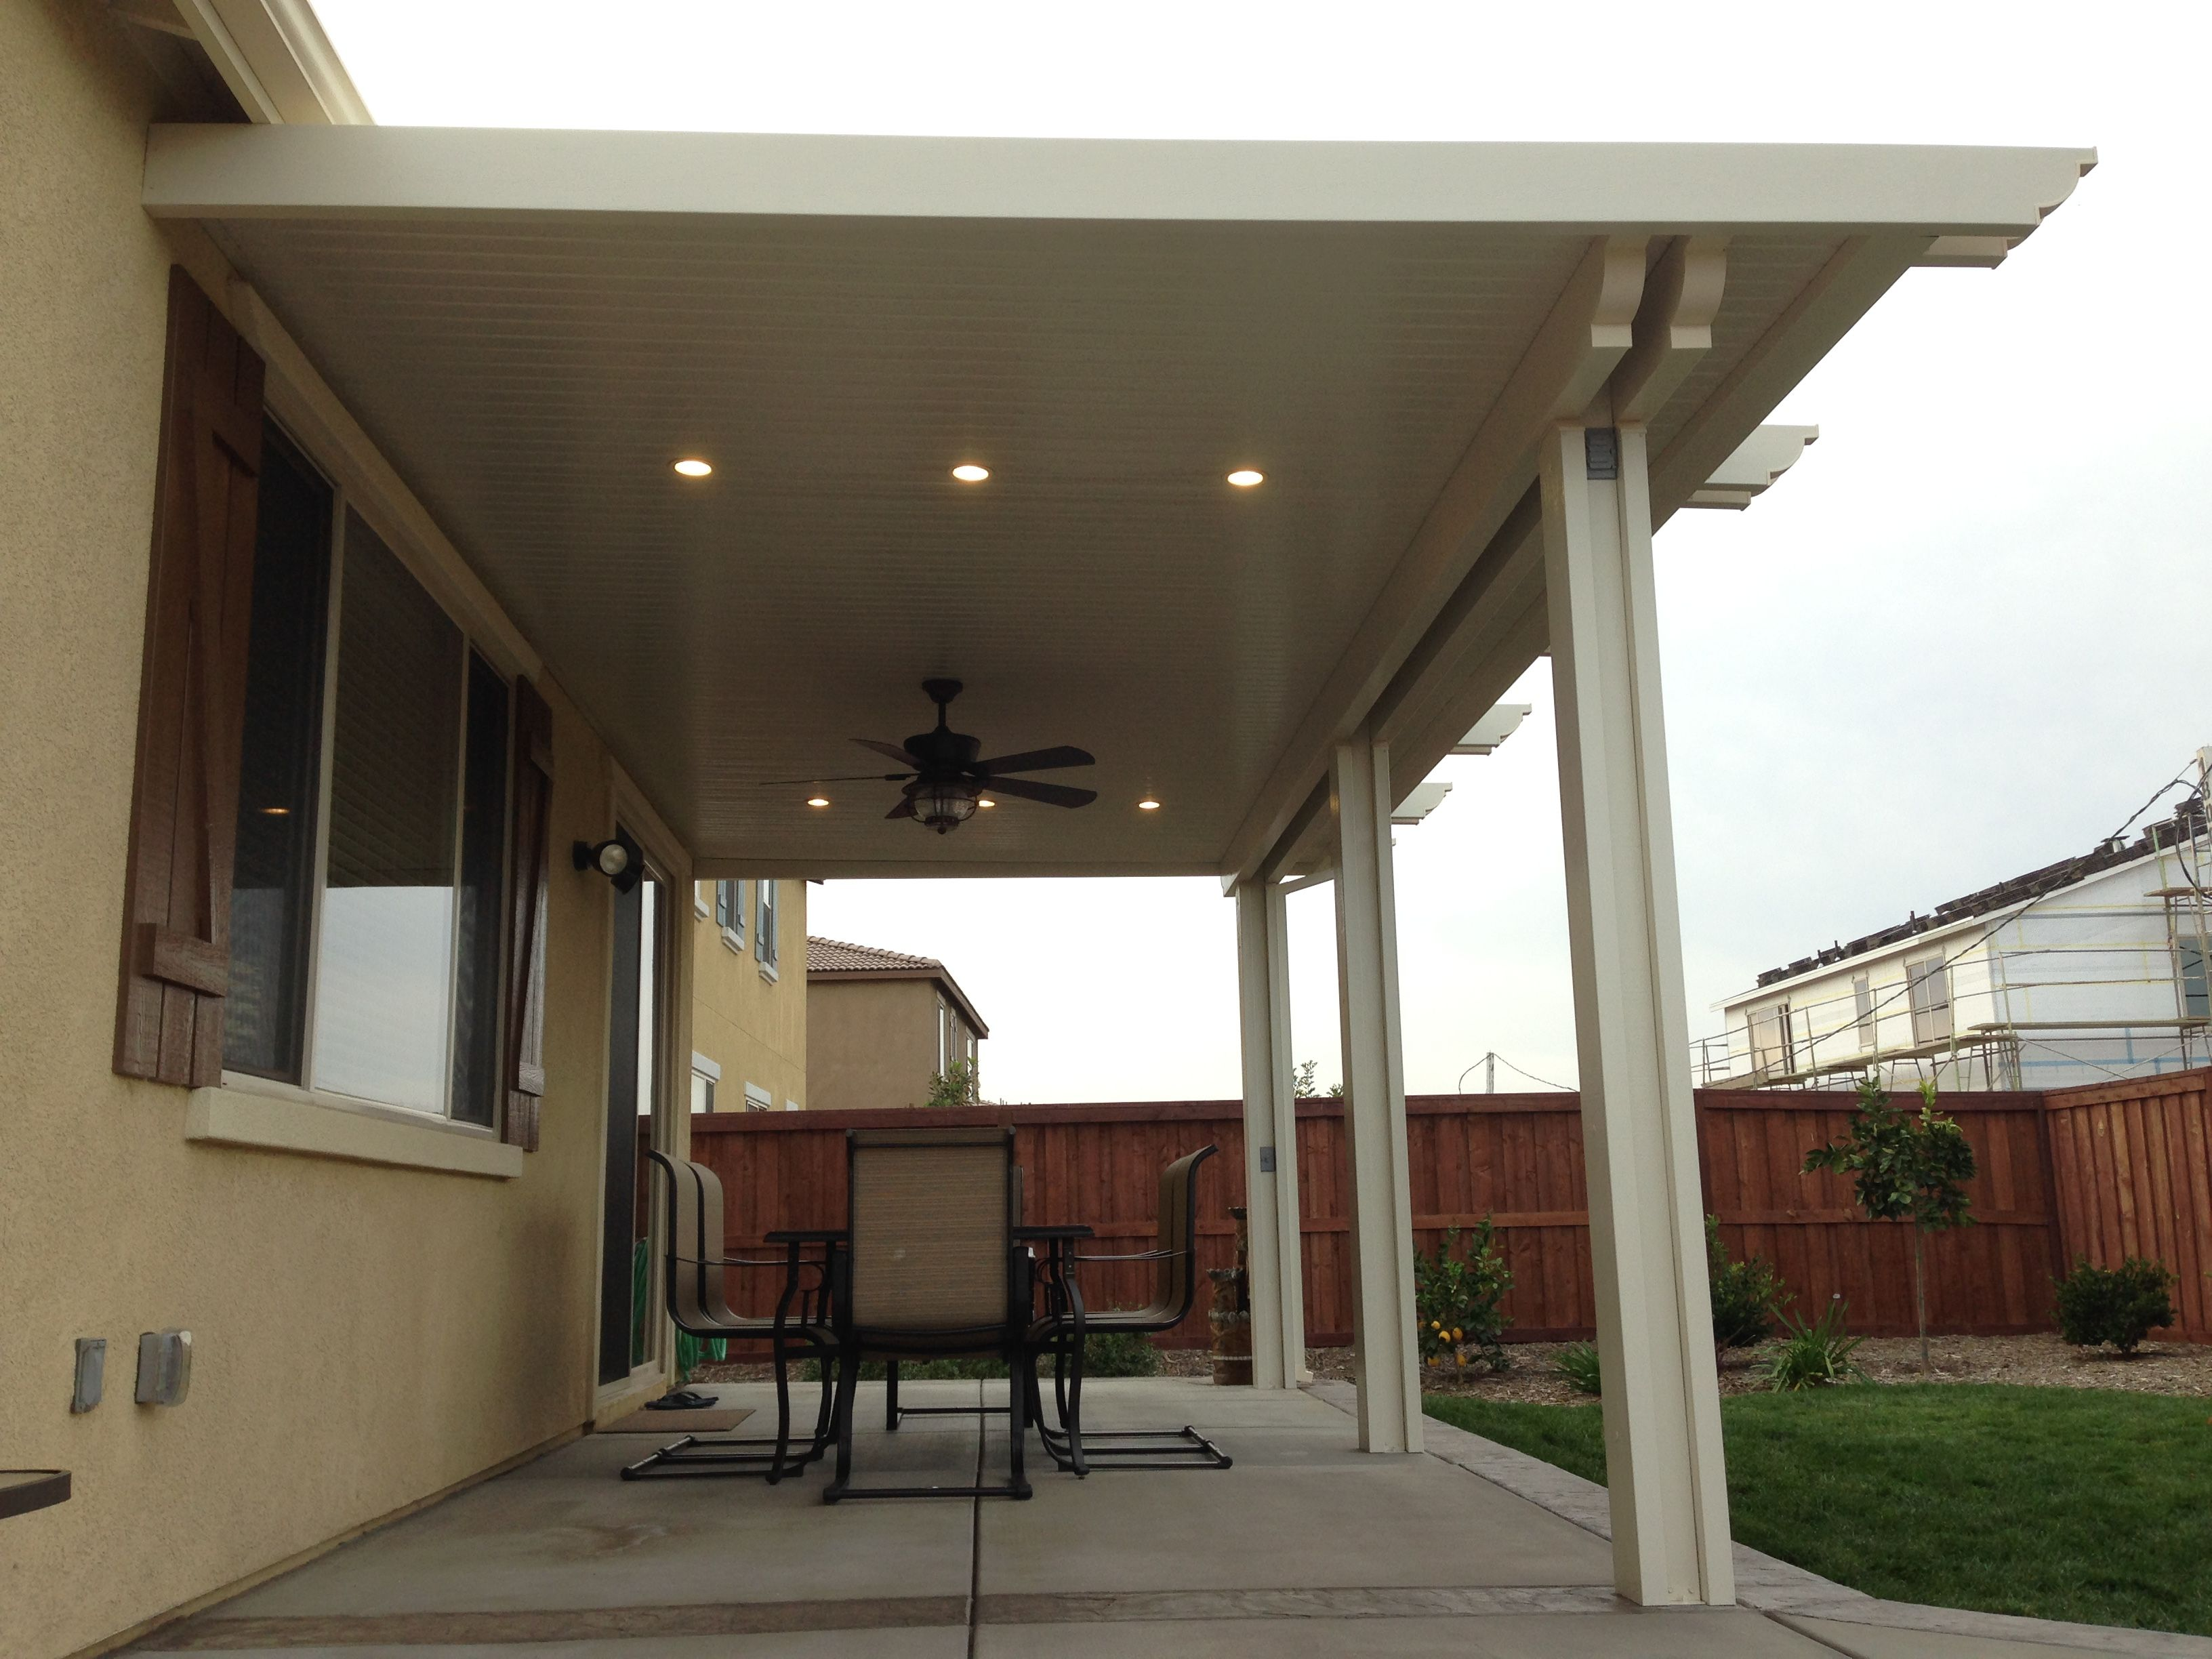 Delightful Alumawood Patio Cover With Fan And Two Lightstrips (canned Lights)